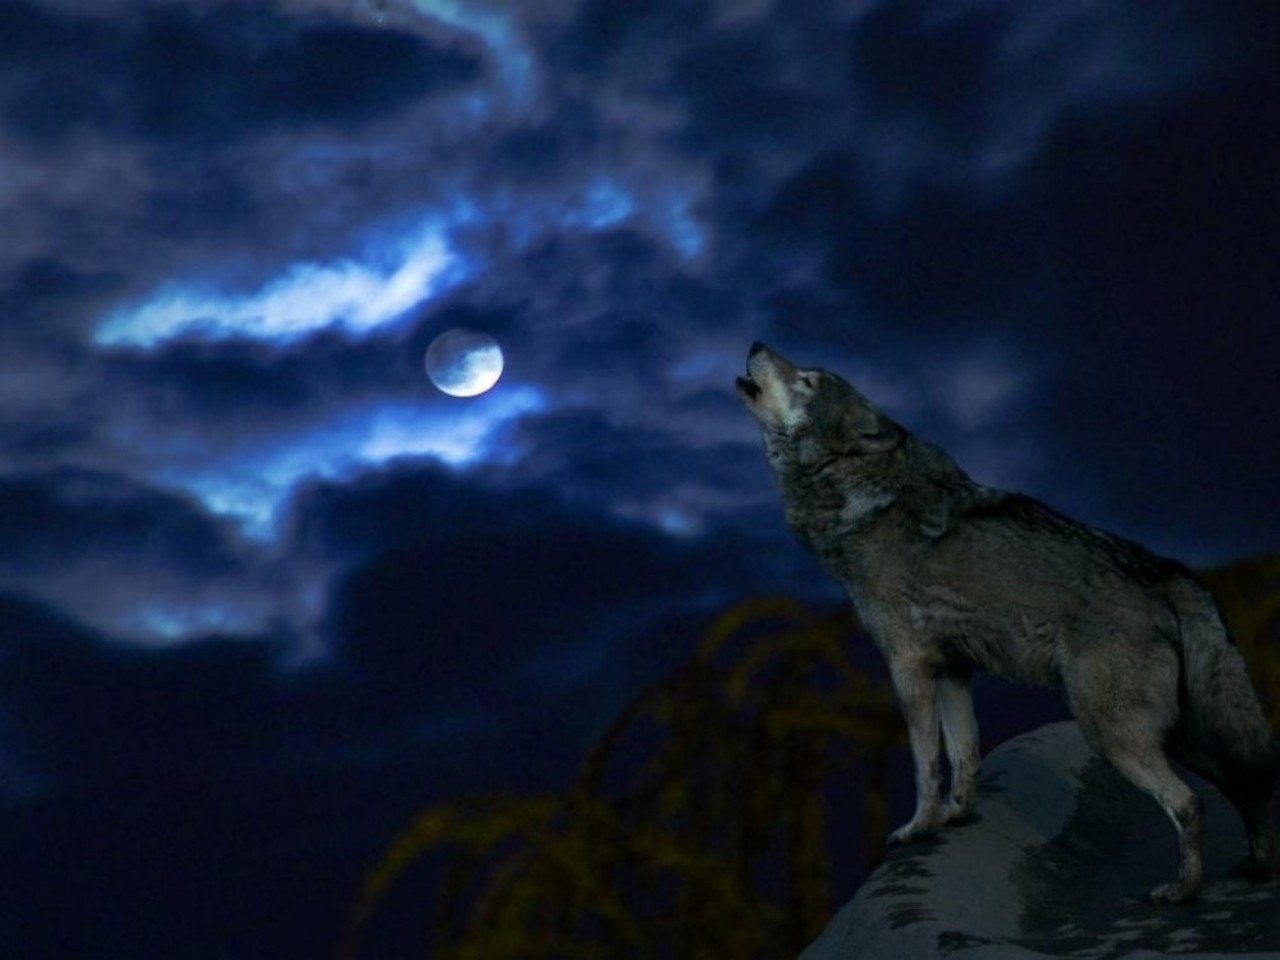 Wolf and Moon Wallpaper - WallpaperSafari